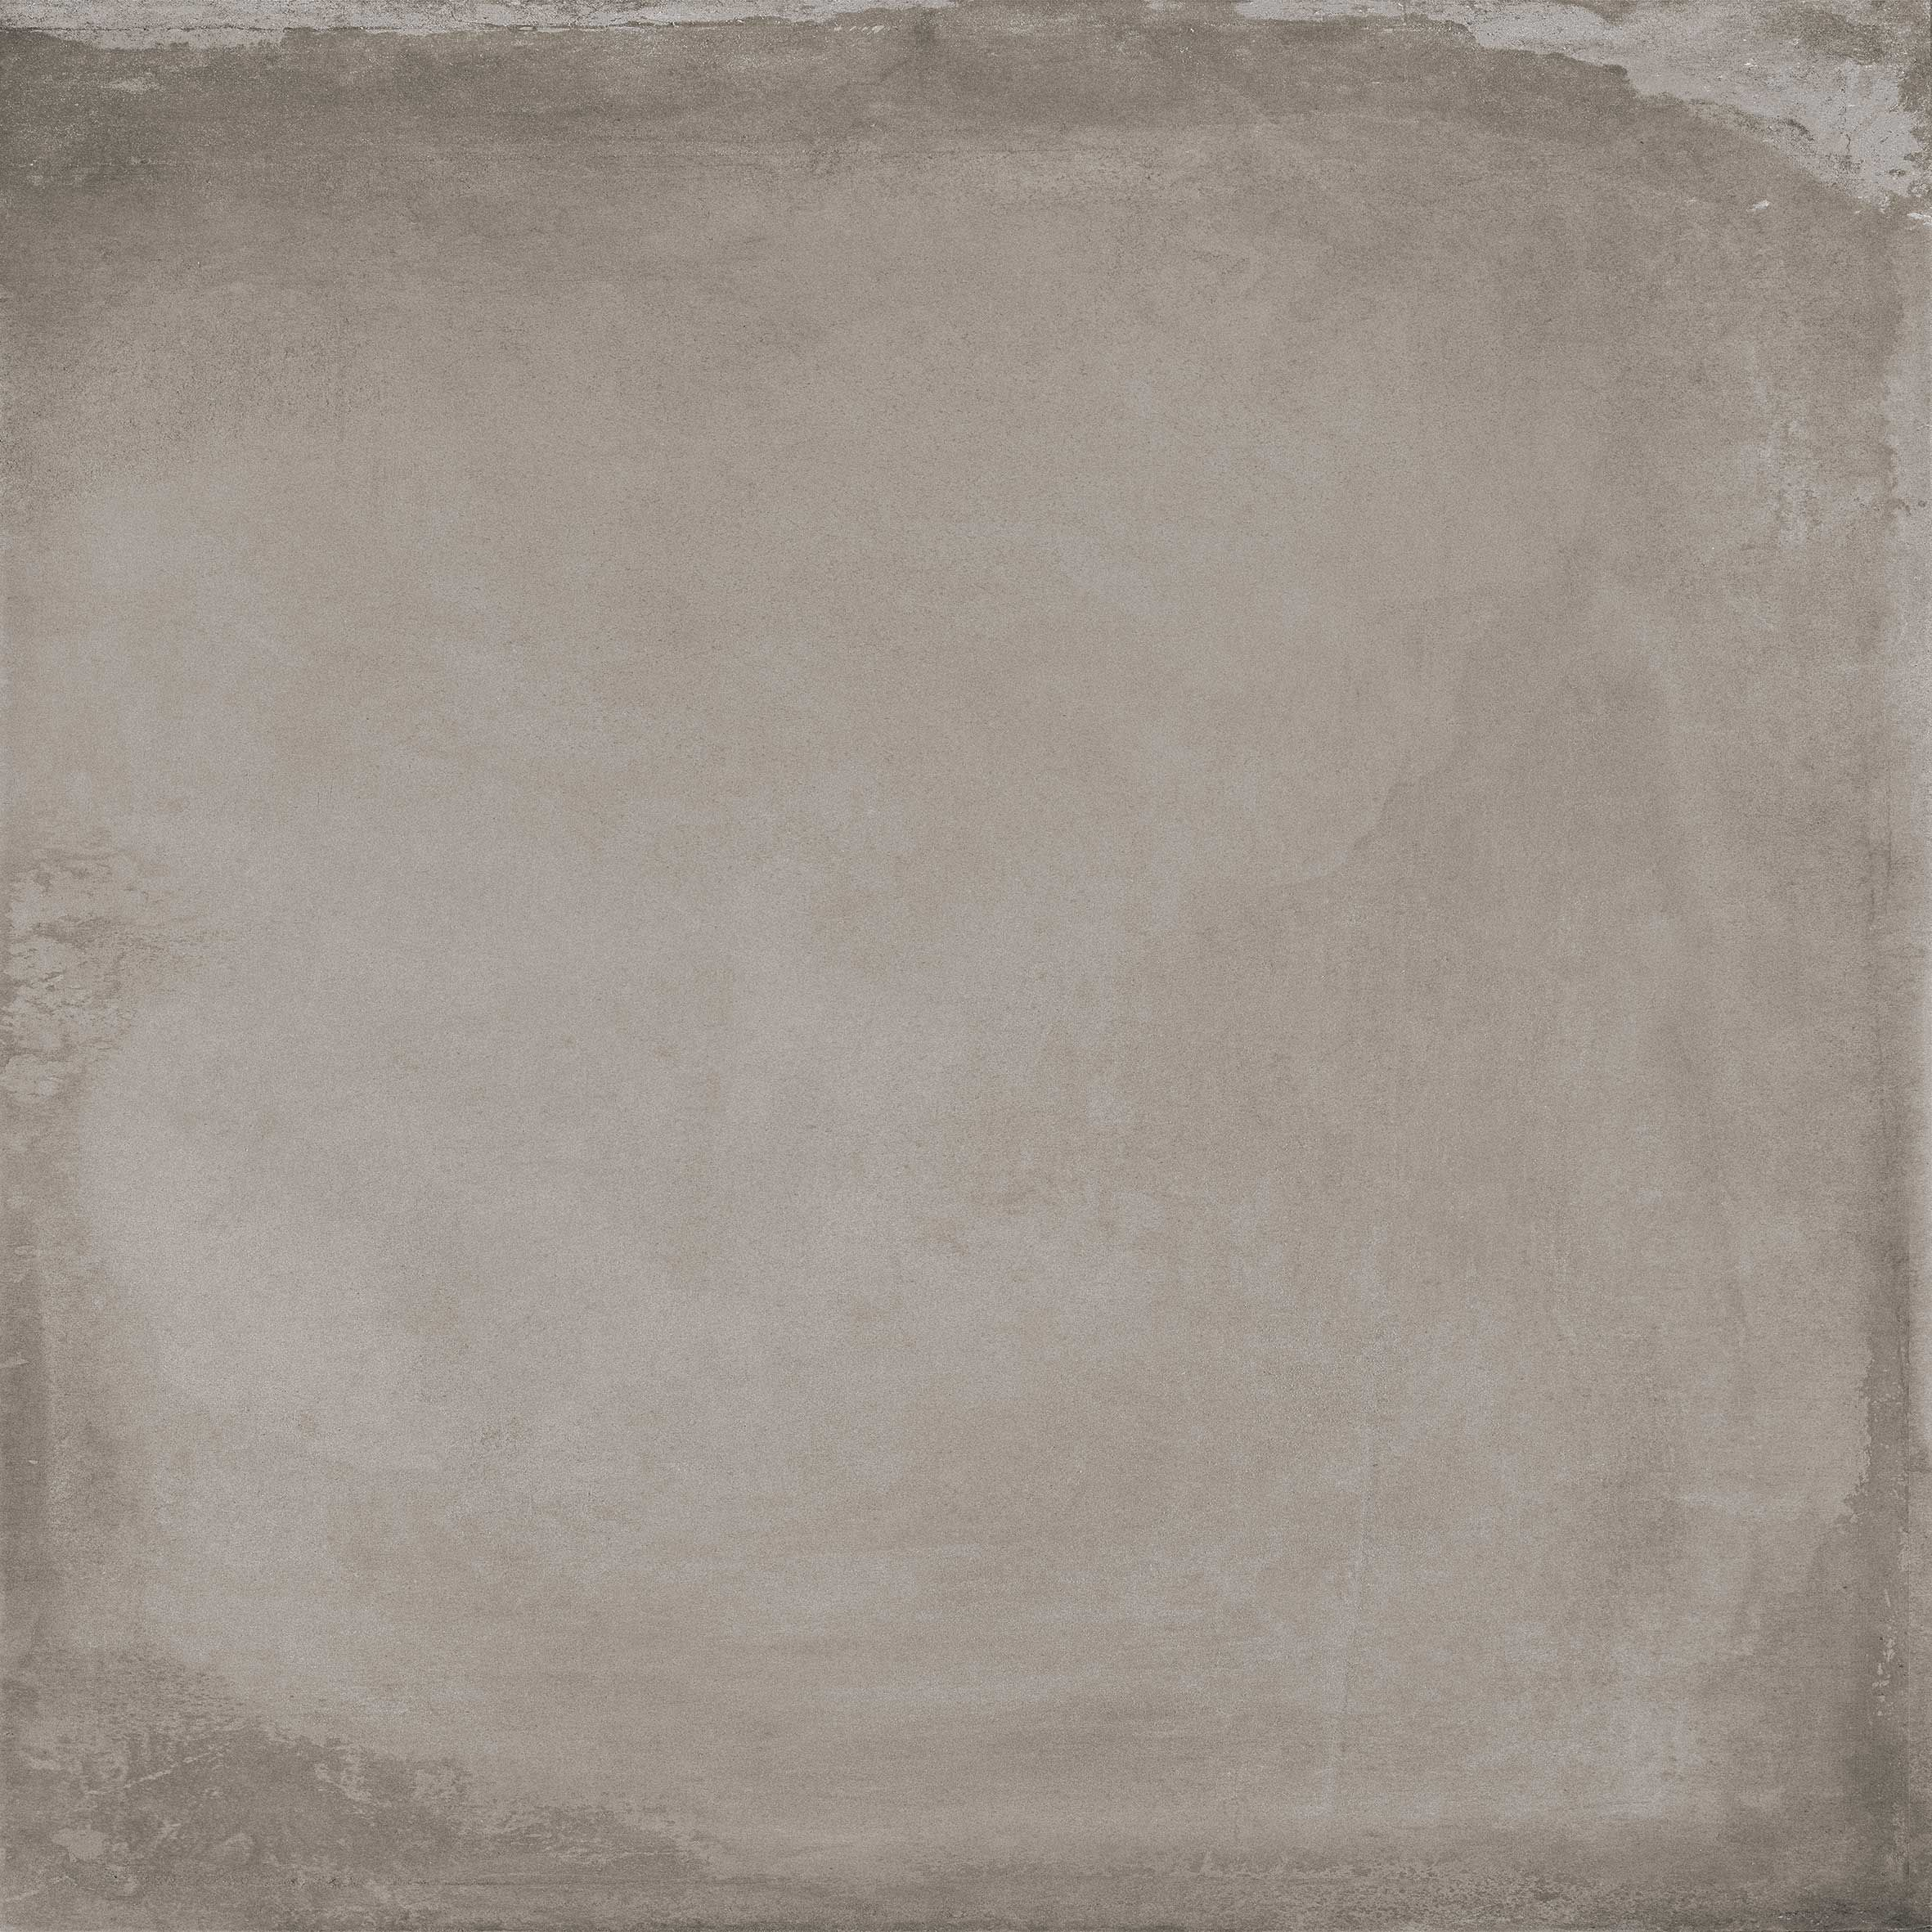 Derby vison colored body porcelain by roca porcelain tiles by discover our color body porcelain from roca tile usa indoor and outdoor ceramic tiles dailygadgetfo Choice Image